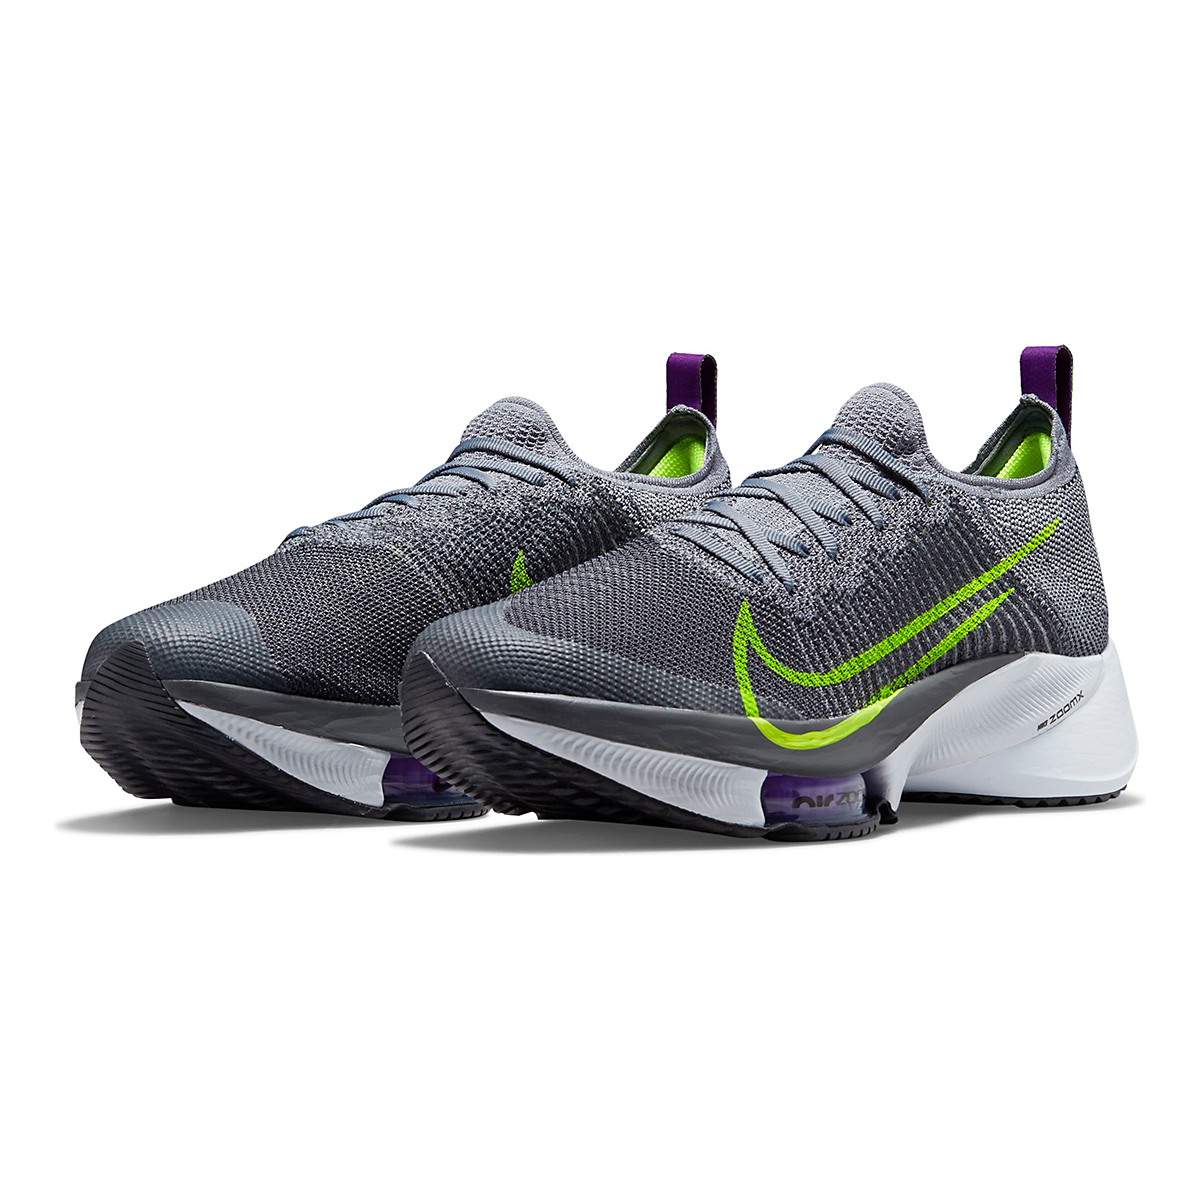 Men's Nike Air Zoom Tempo Next% Running Shoe - Color: Perticle Grey/Volt Grey/Wild Berry - Size: 10 - Width: Regular, Perticle Grey/Volt Grey/Wild Berry, large, image 4